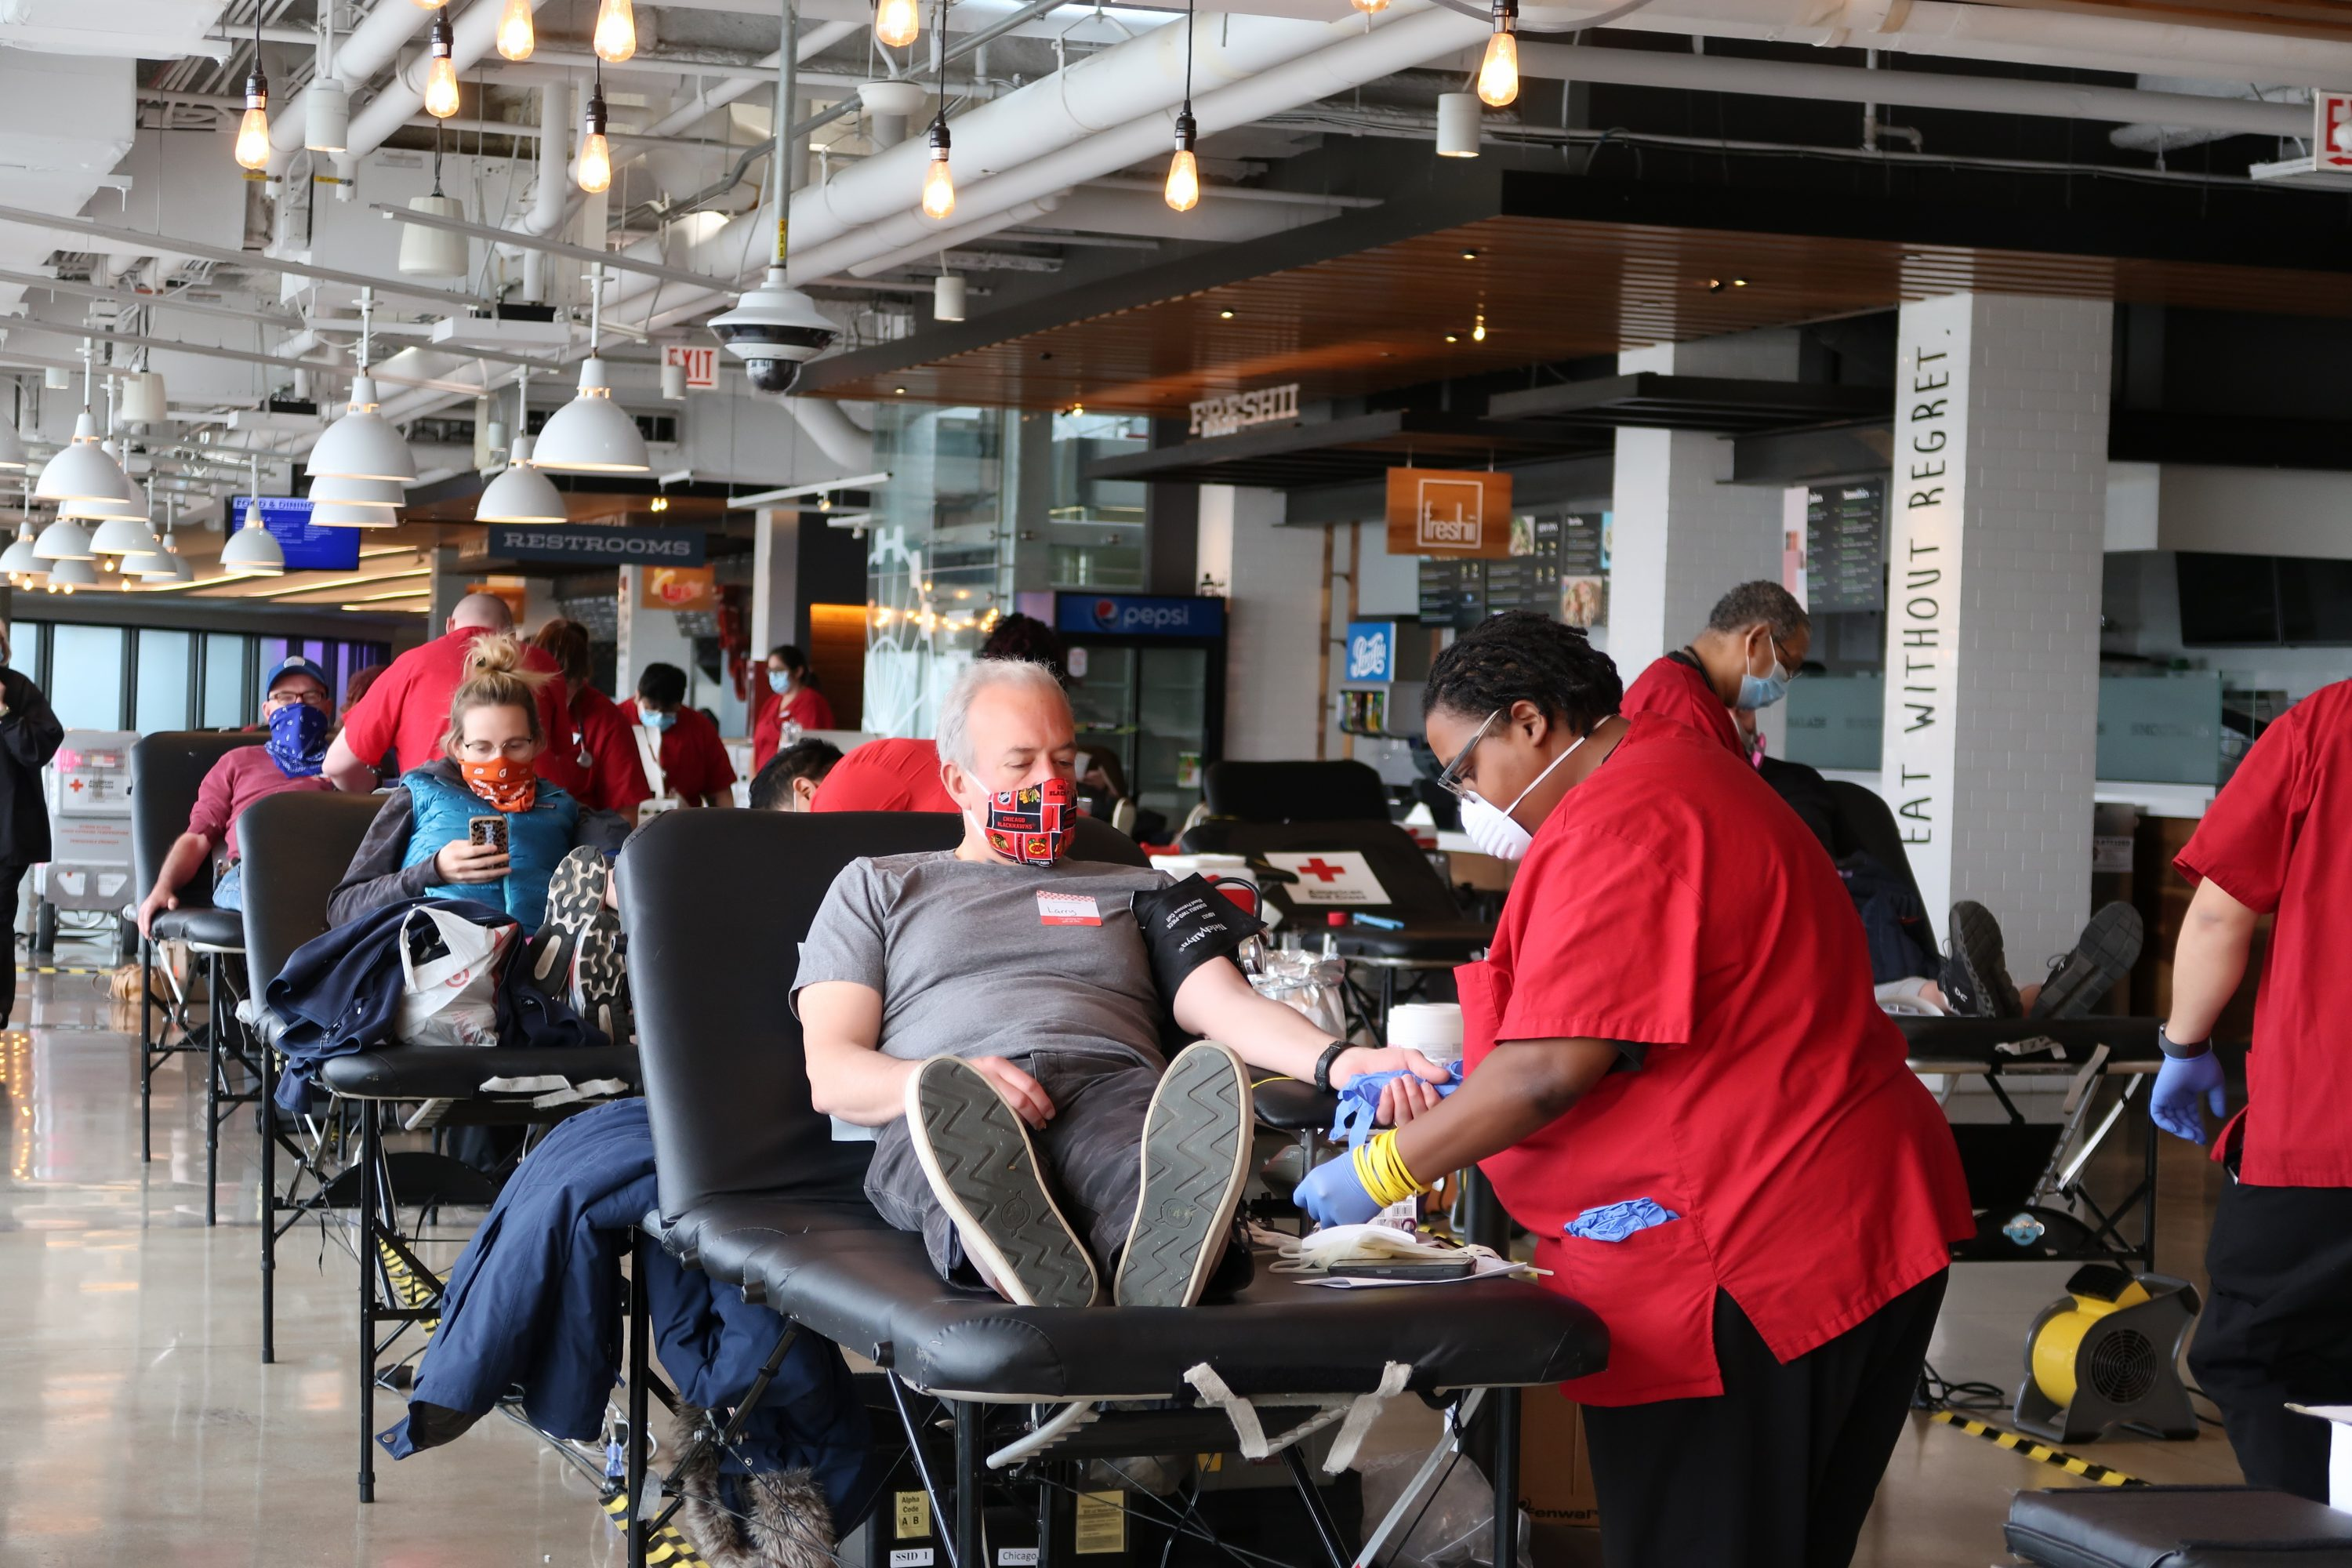 Navy Pier Hosts Third Blood Drive with American Red Cross on June 8